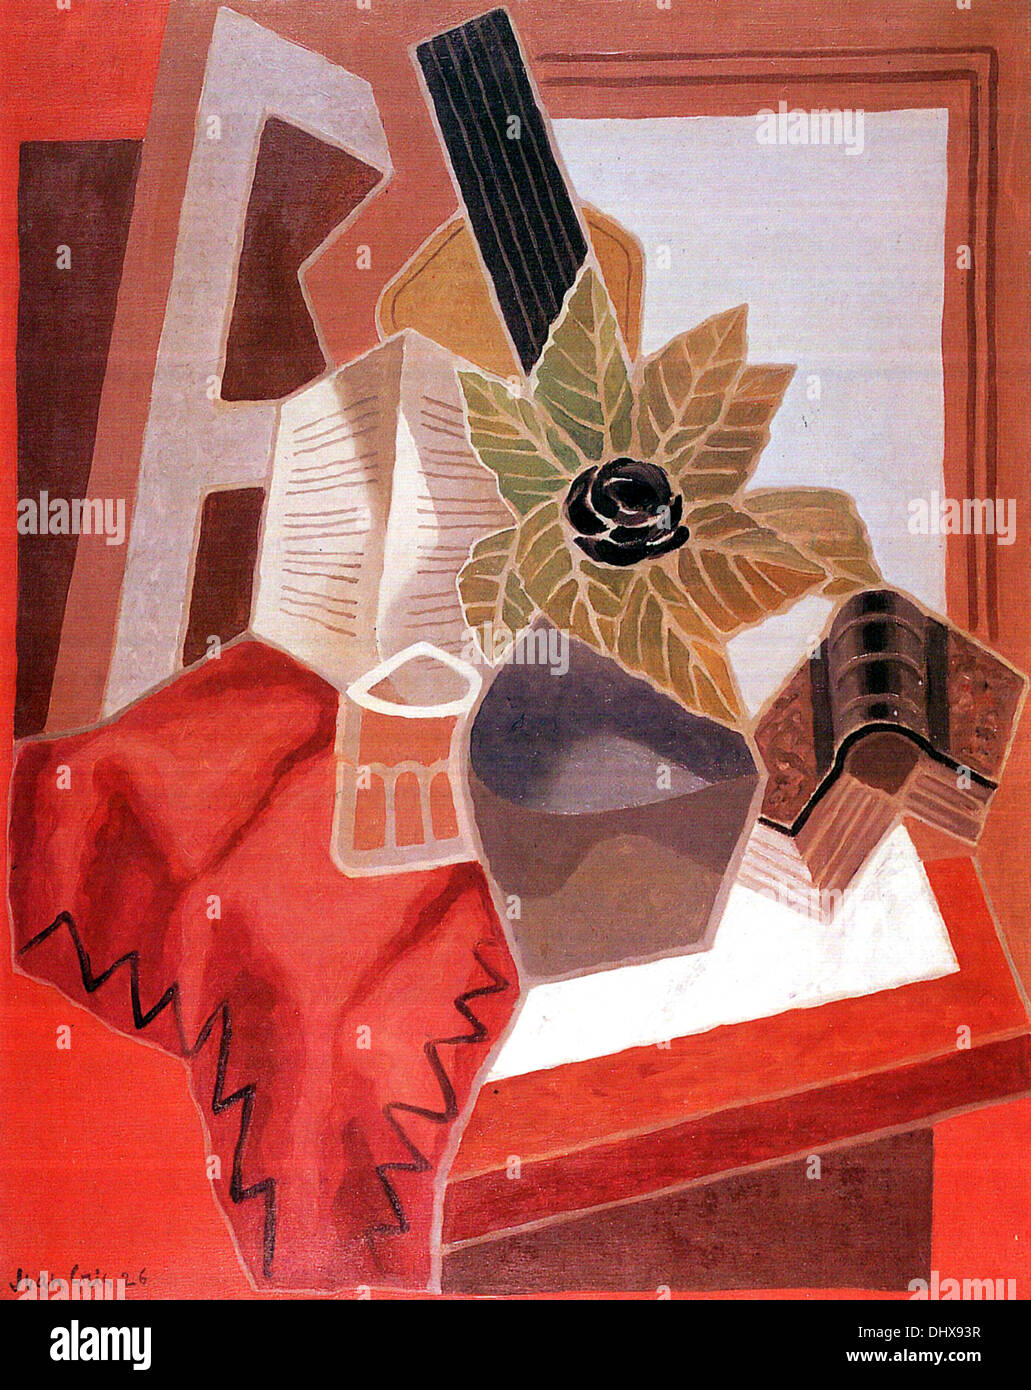 Flower on a Table  - by Juan Gris, 1925 - Stock Image